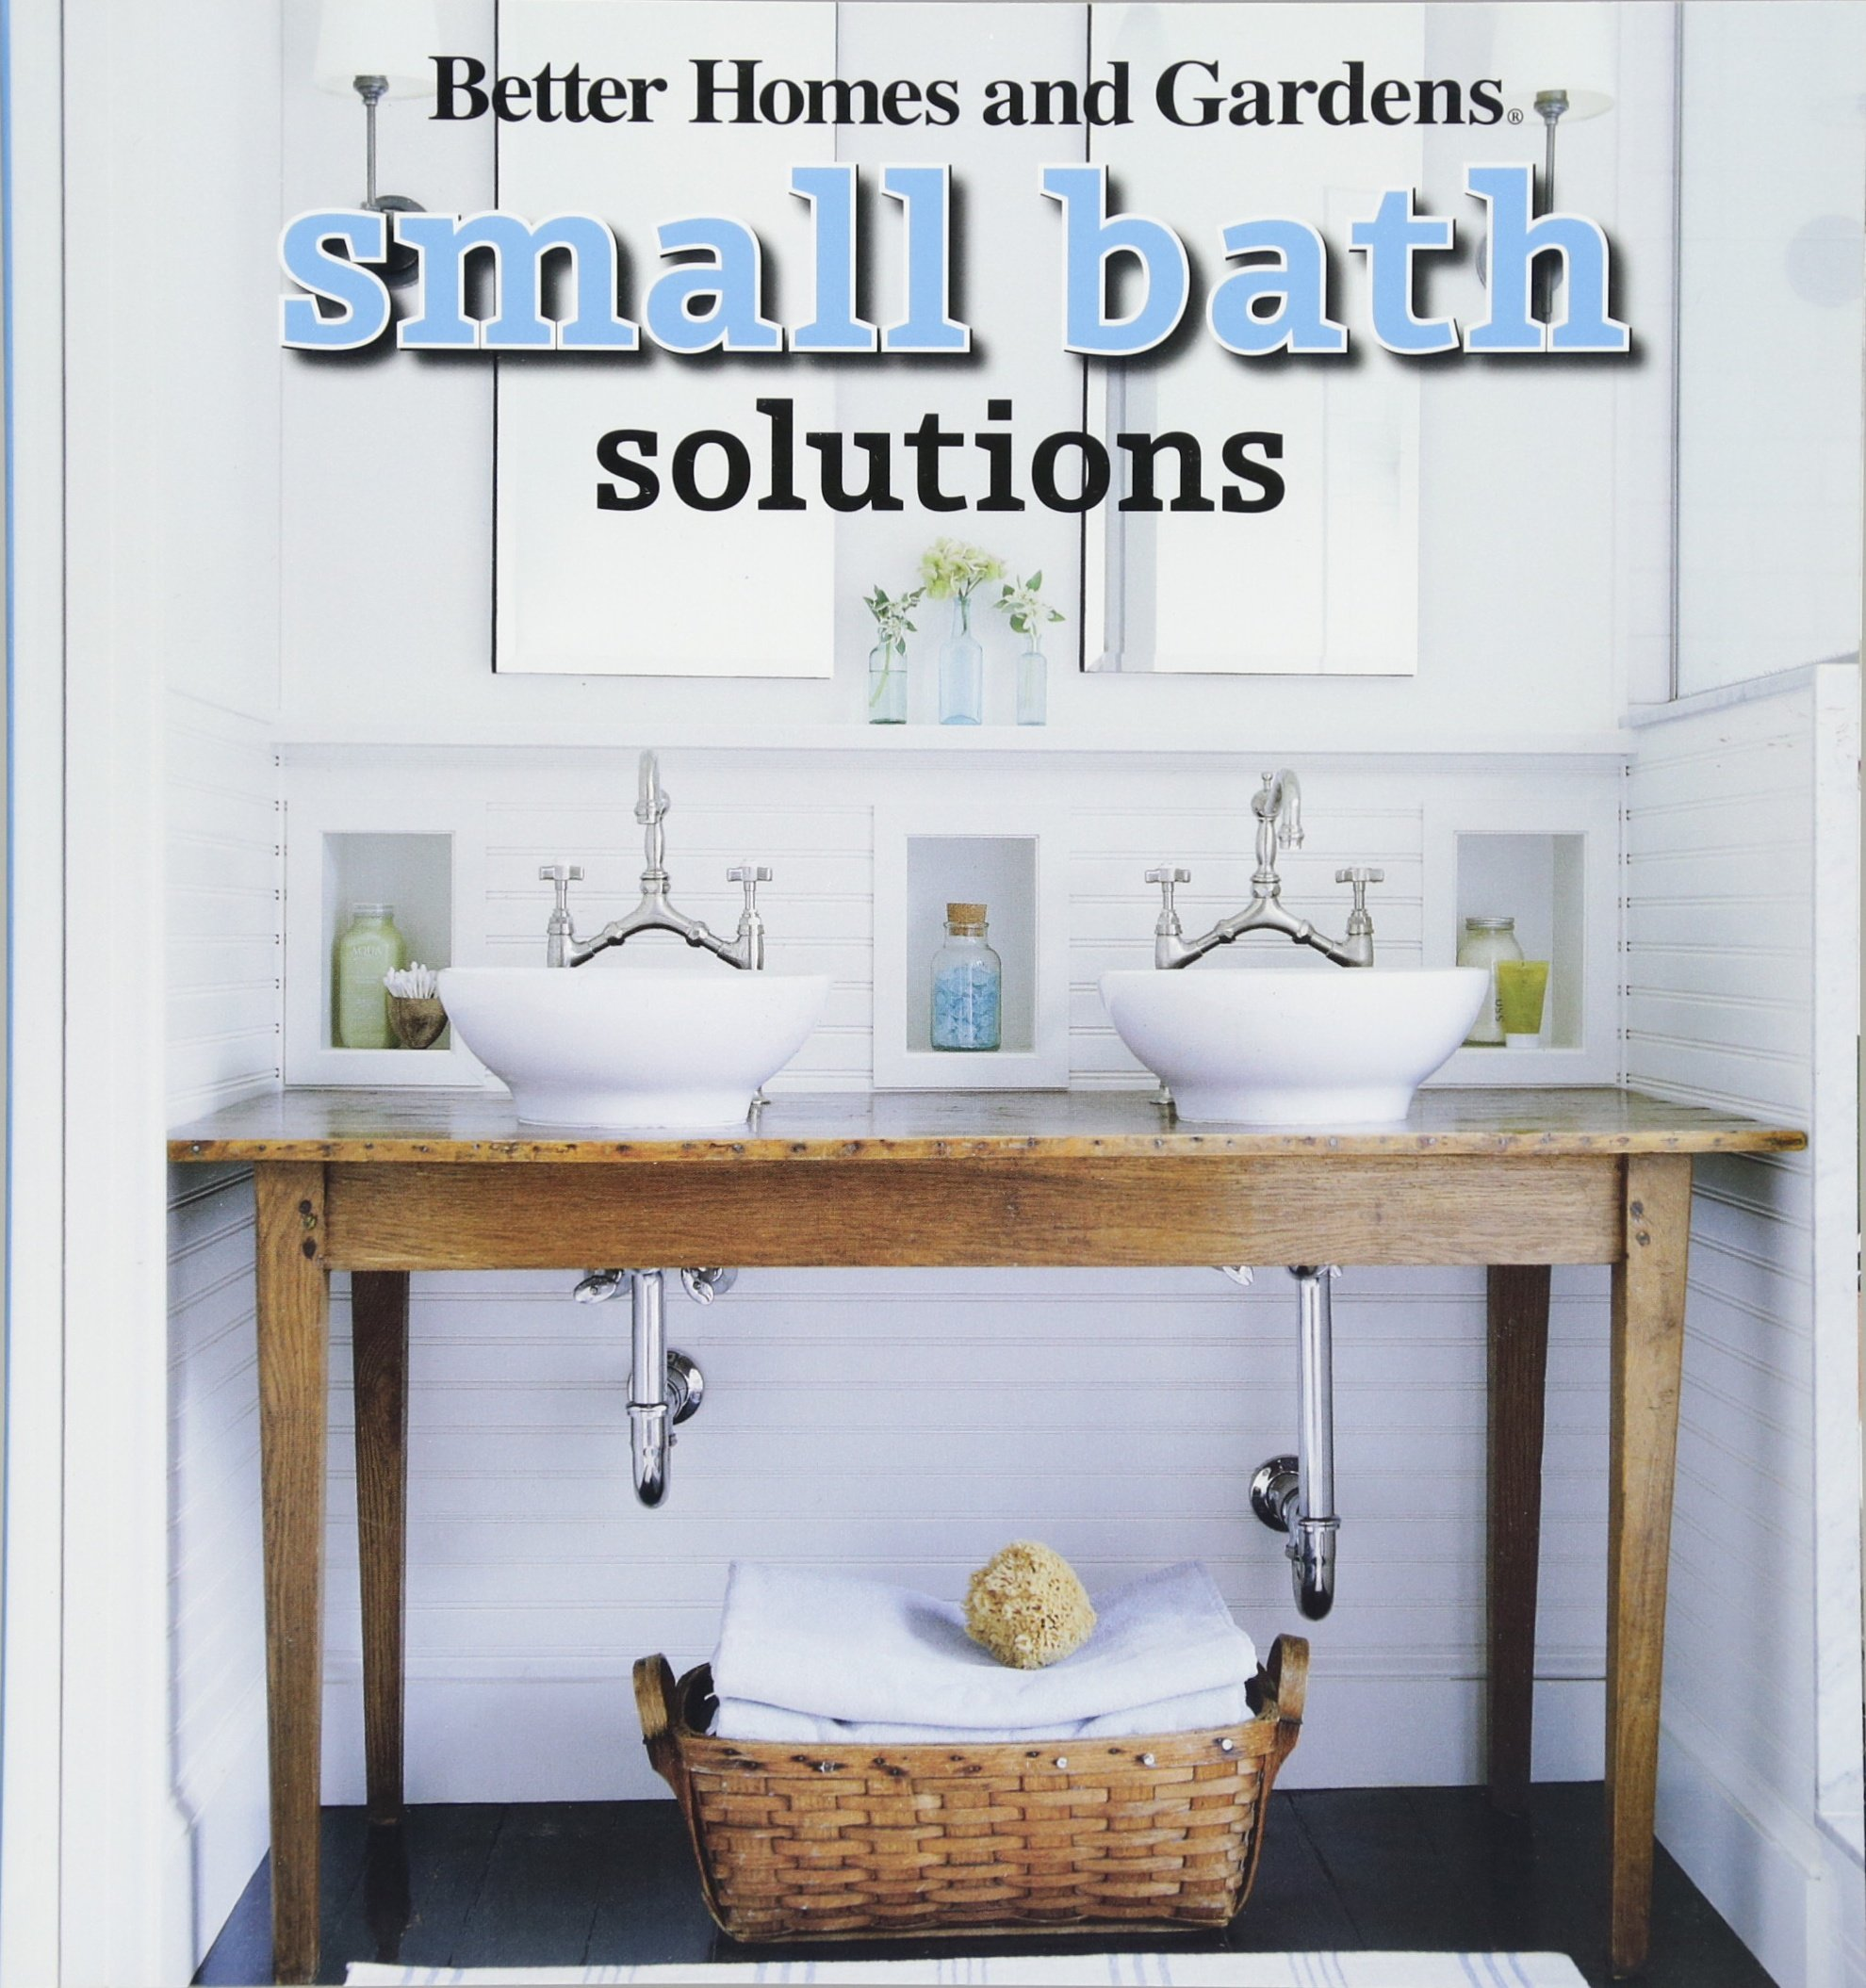 Small Solutions Better Homes Gardens product image